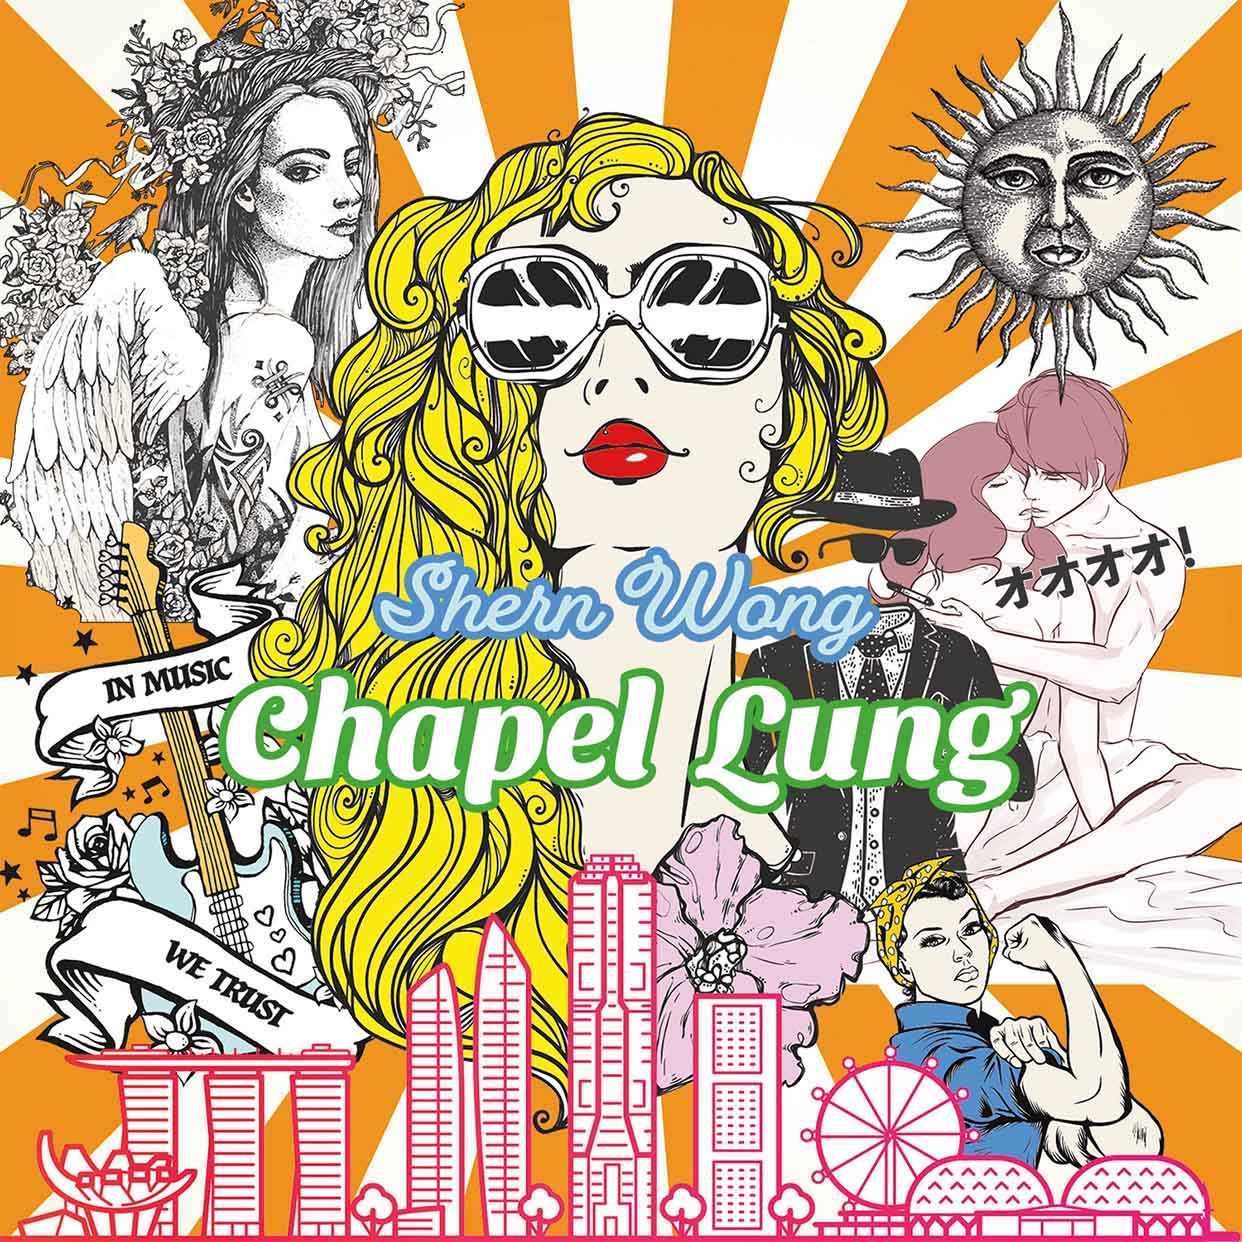 Chapel Lung